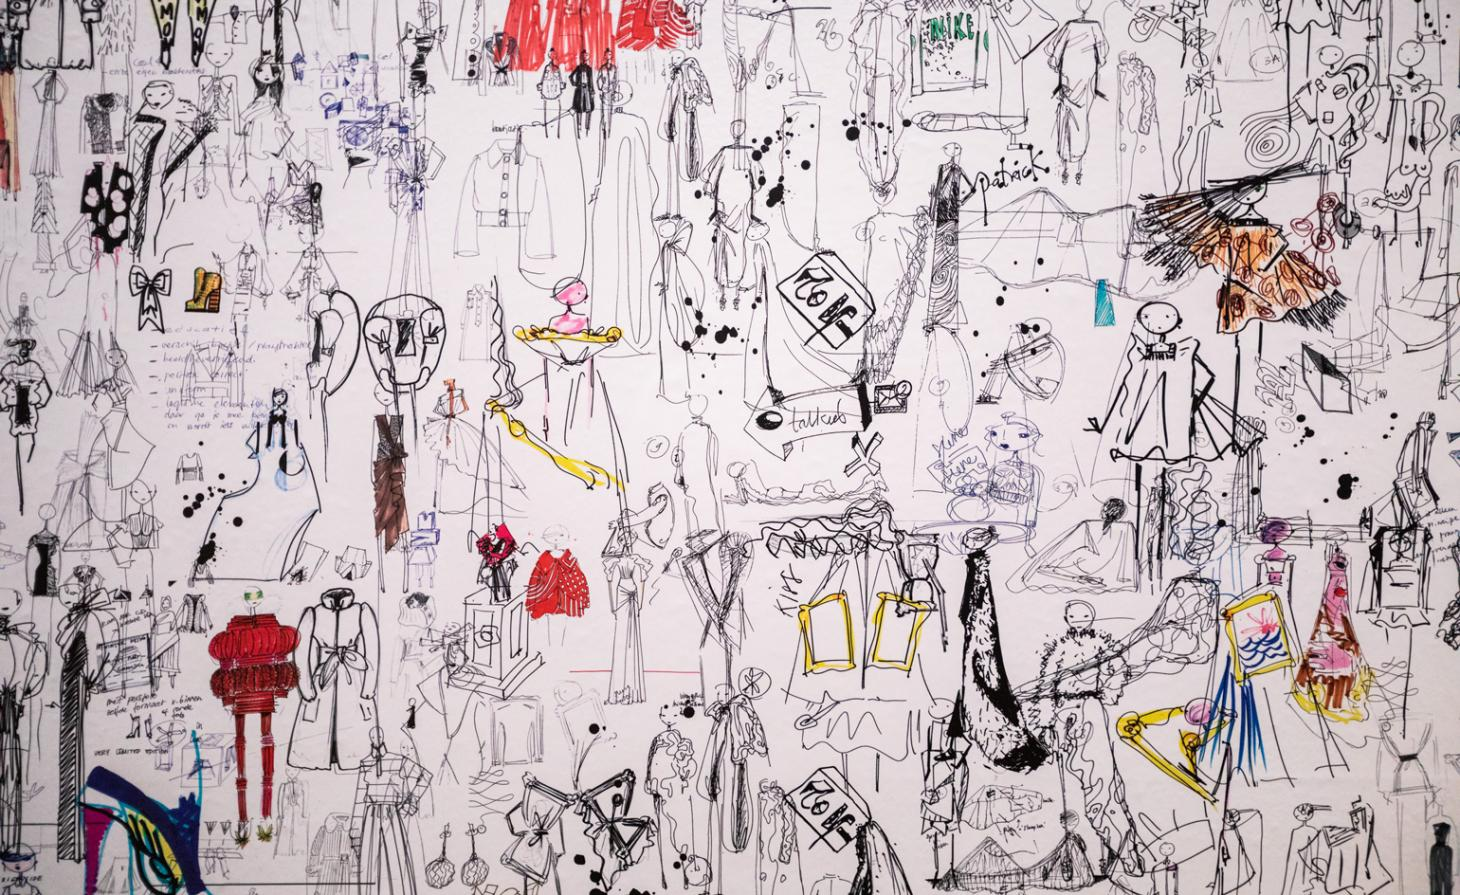 Original sketches from the Viktor&Rolf archives